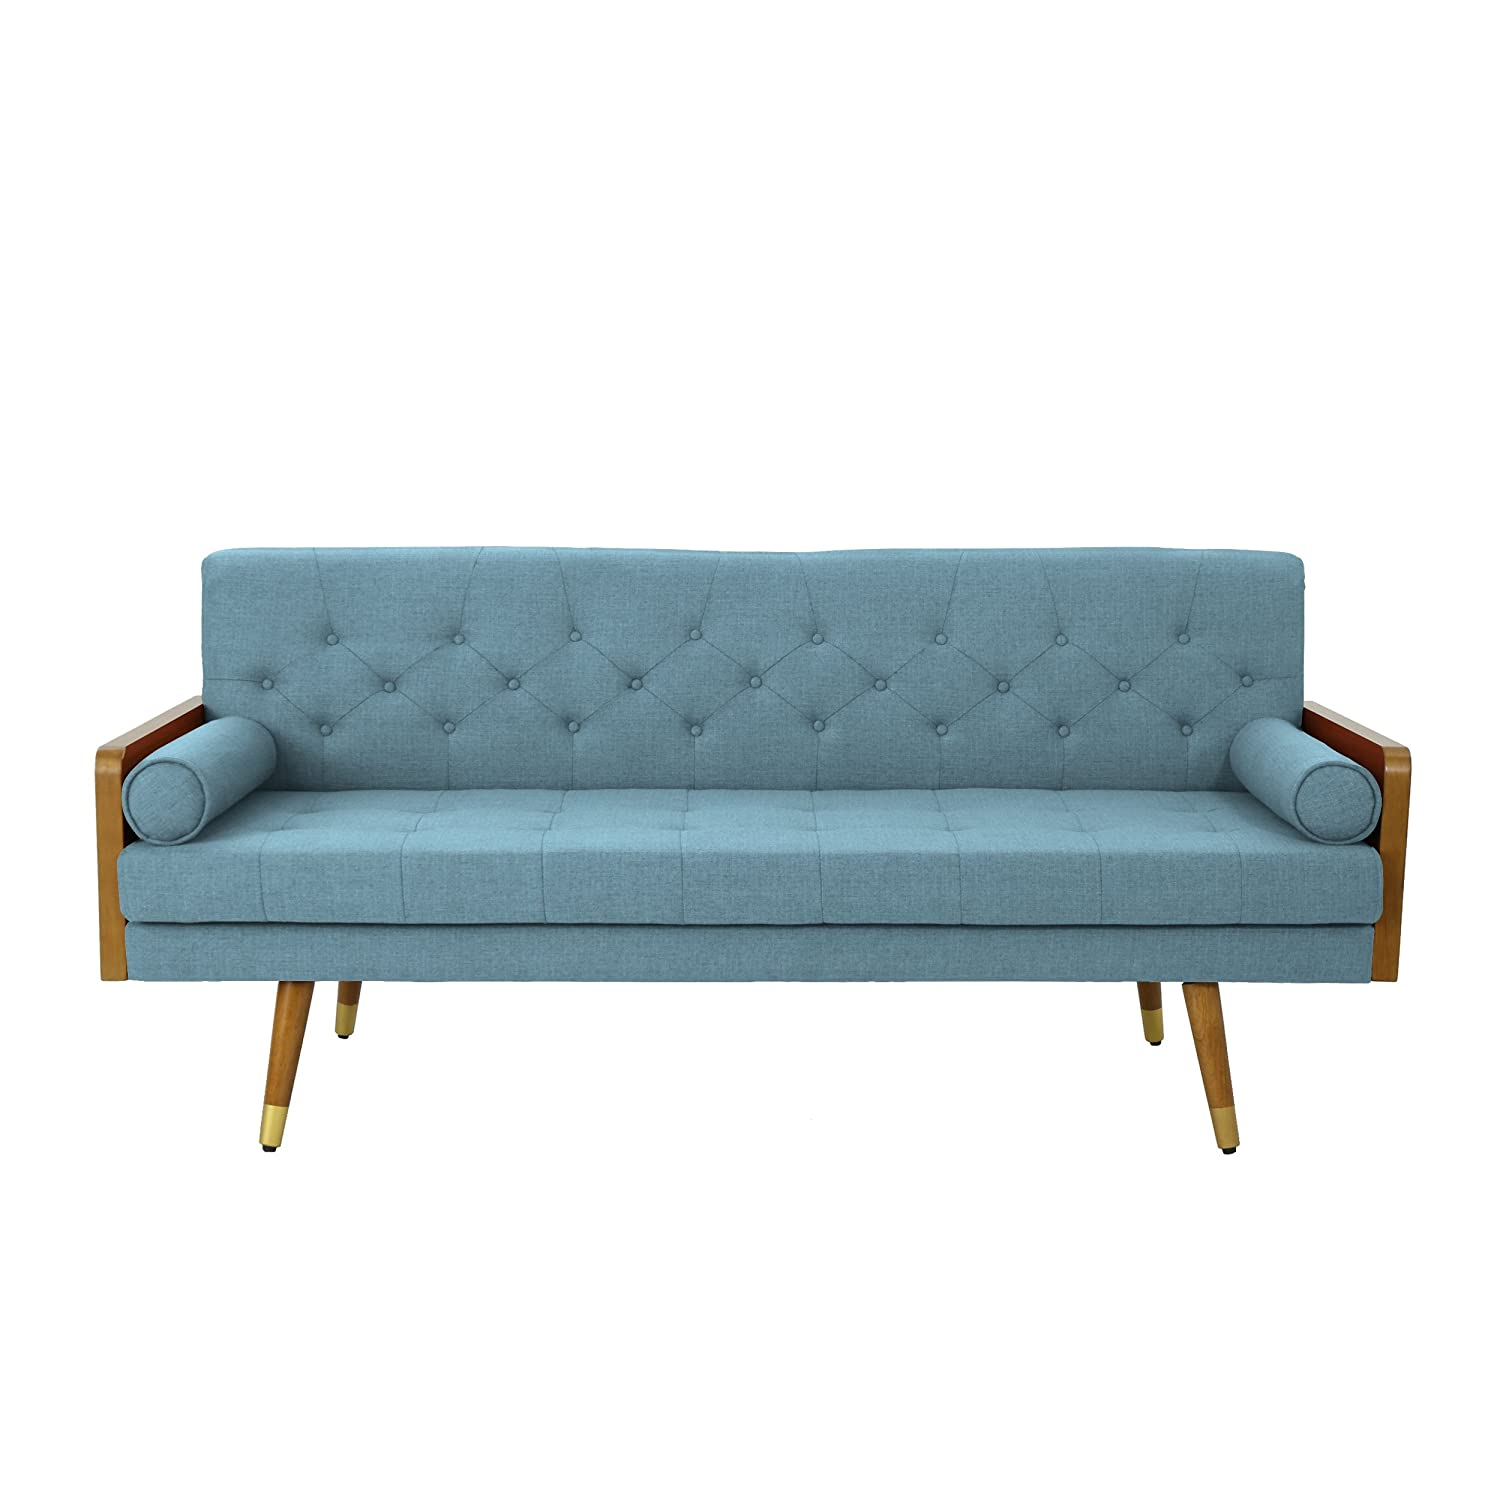 Christopher Knight Home 305141 Aidan Mid Century Modern Tufted Fabric Sofa,  Blue,